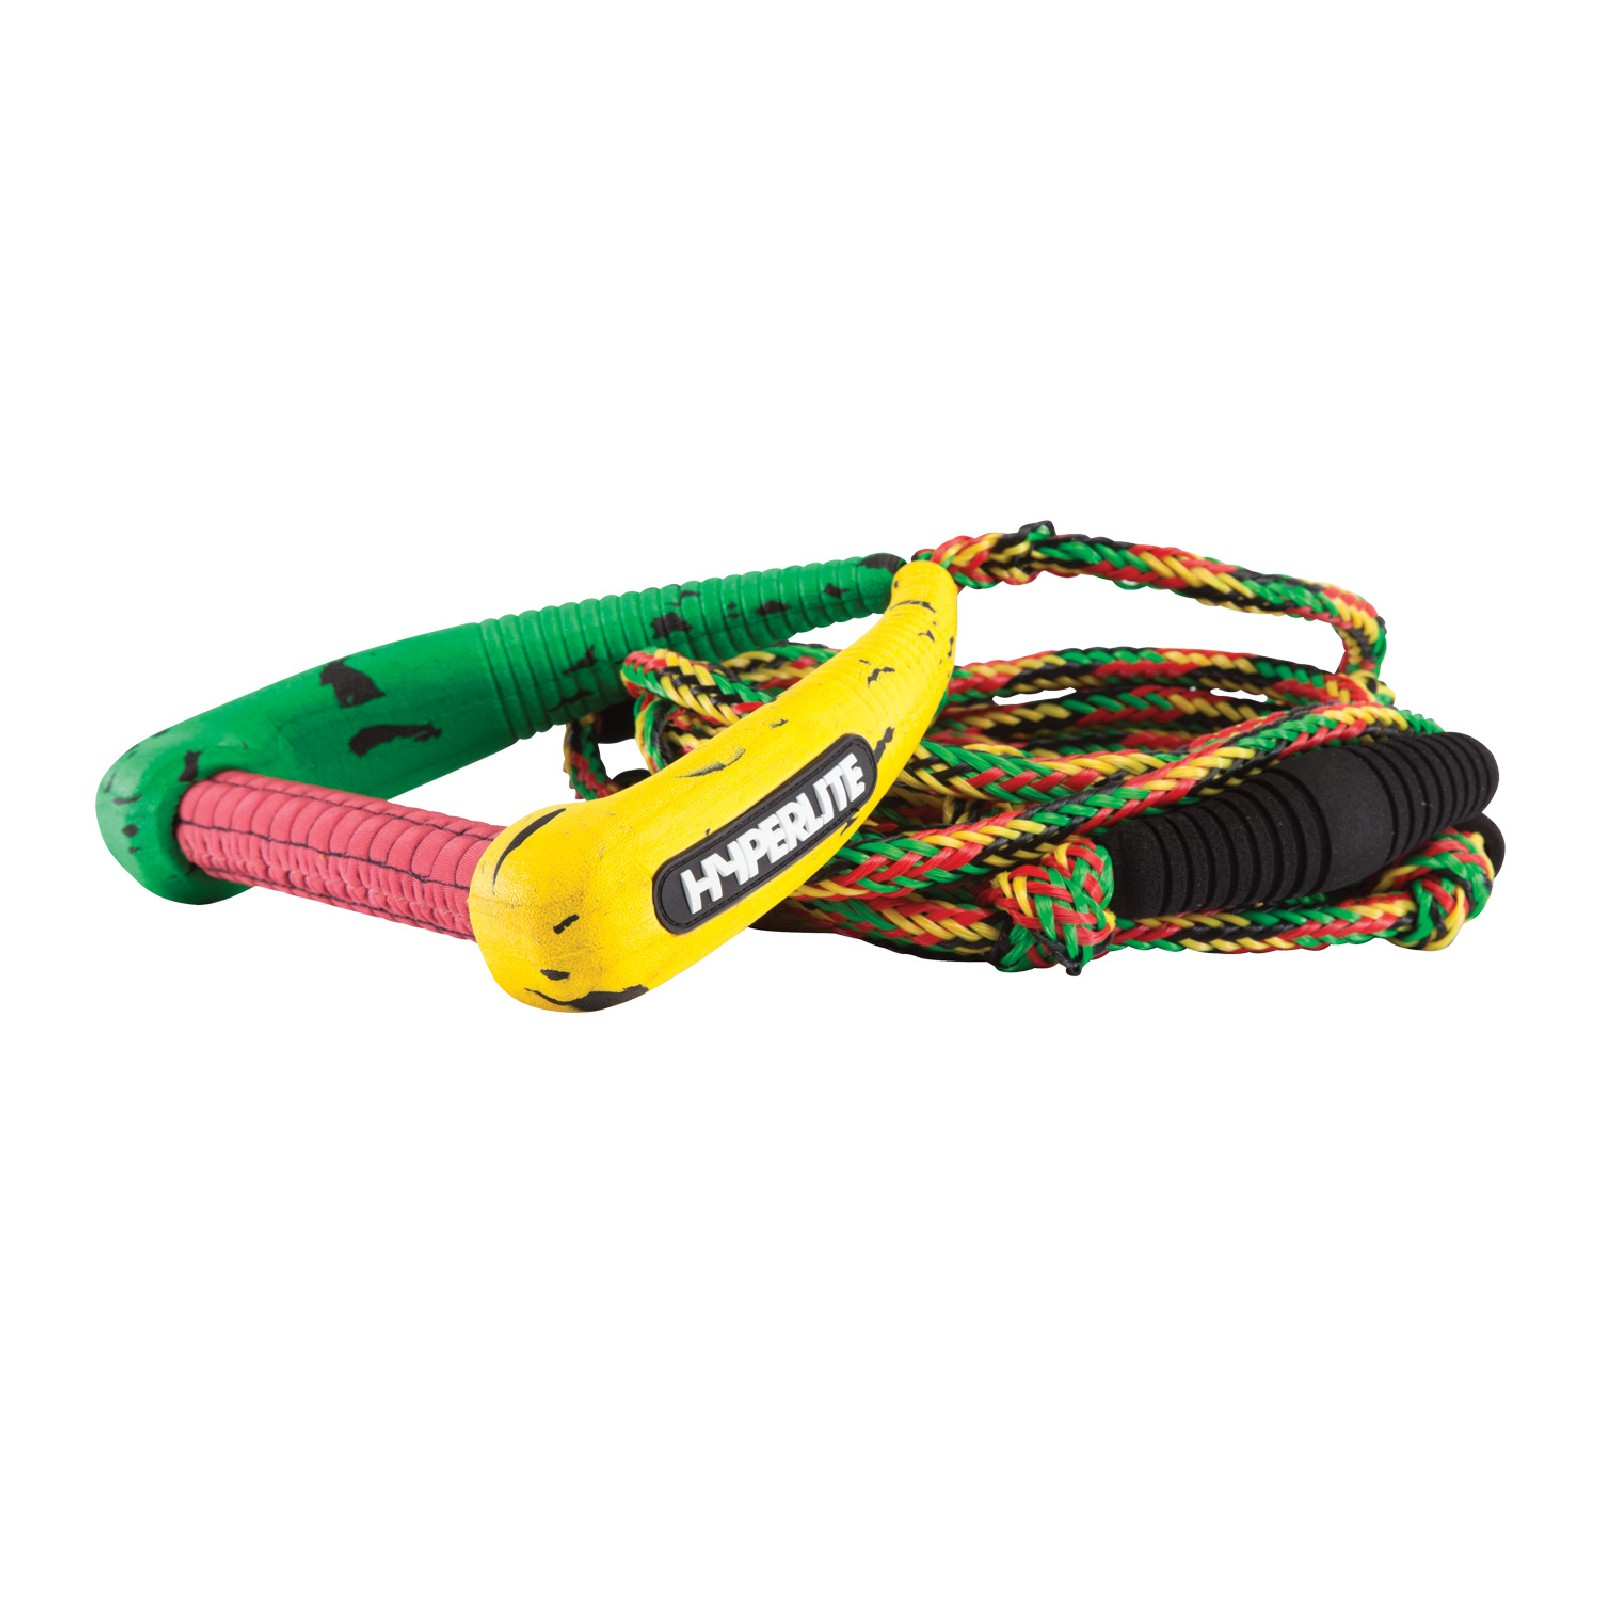 25' PRO SURF ROPE W/HANDLE PACKAGE - MULTI HYPERLITE 2019